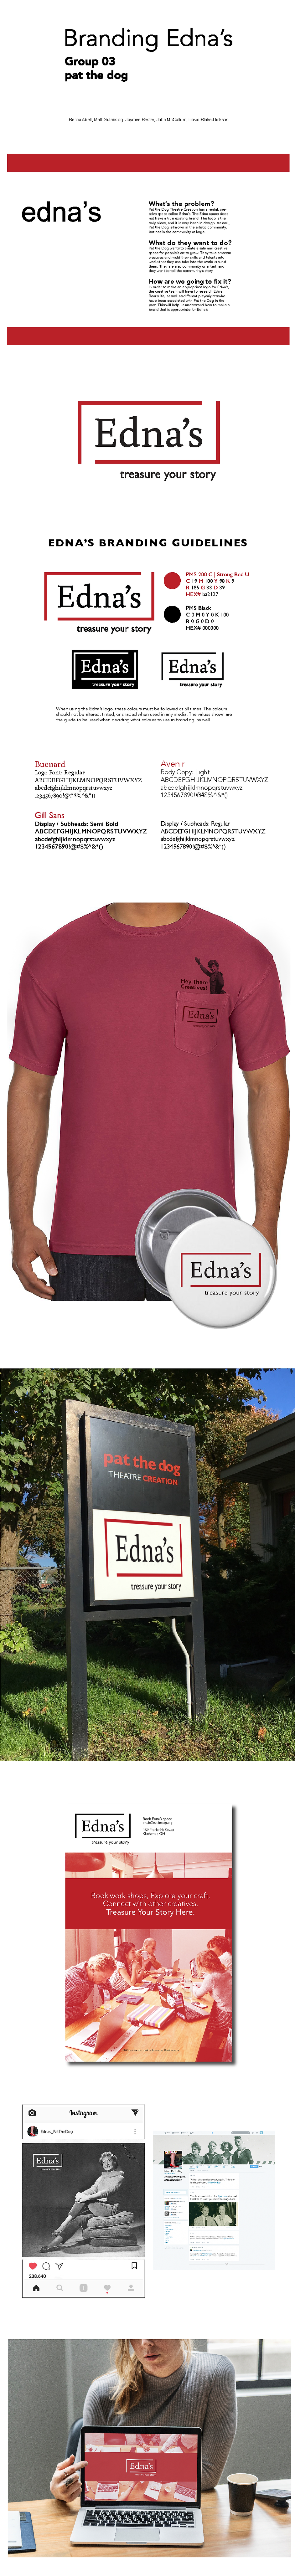 ednas-1.png